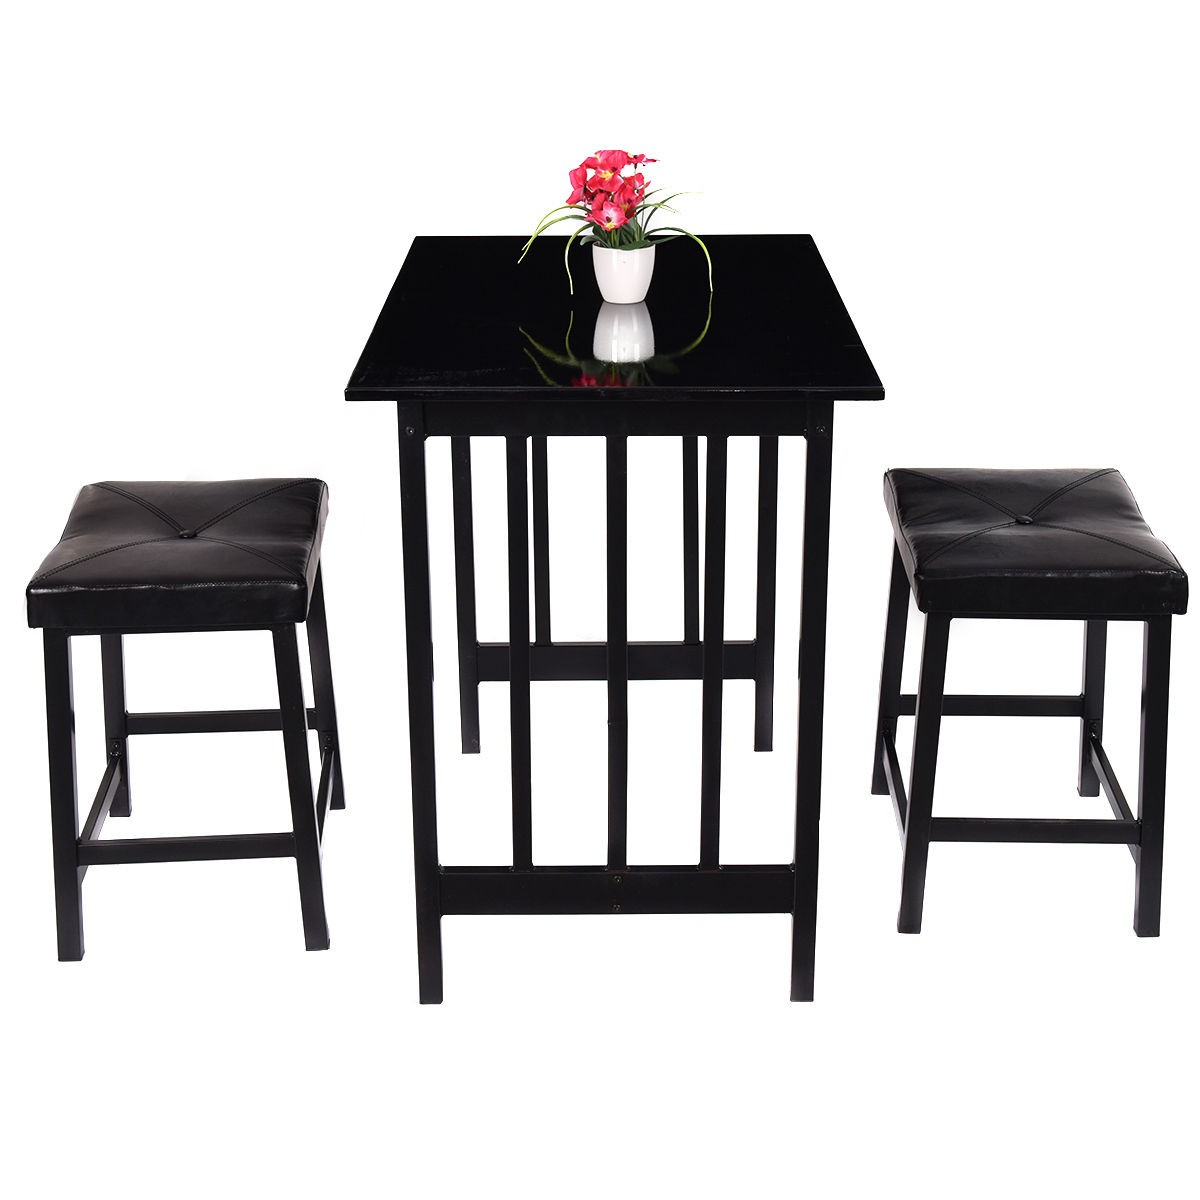 3pcs kitchen counter height dining set table and 2 chairs bar furniture us stock ebay. Black Bedroom Furniture Sets. Home Design Ideas